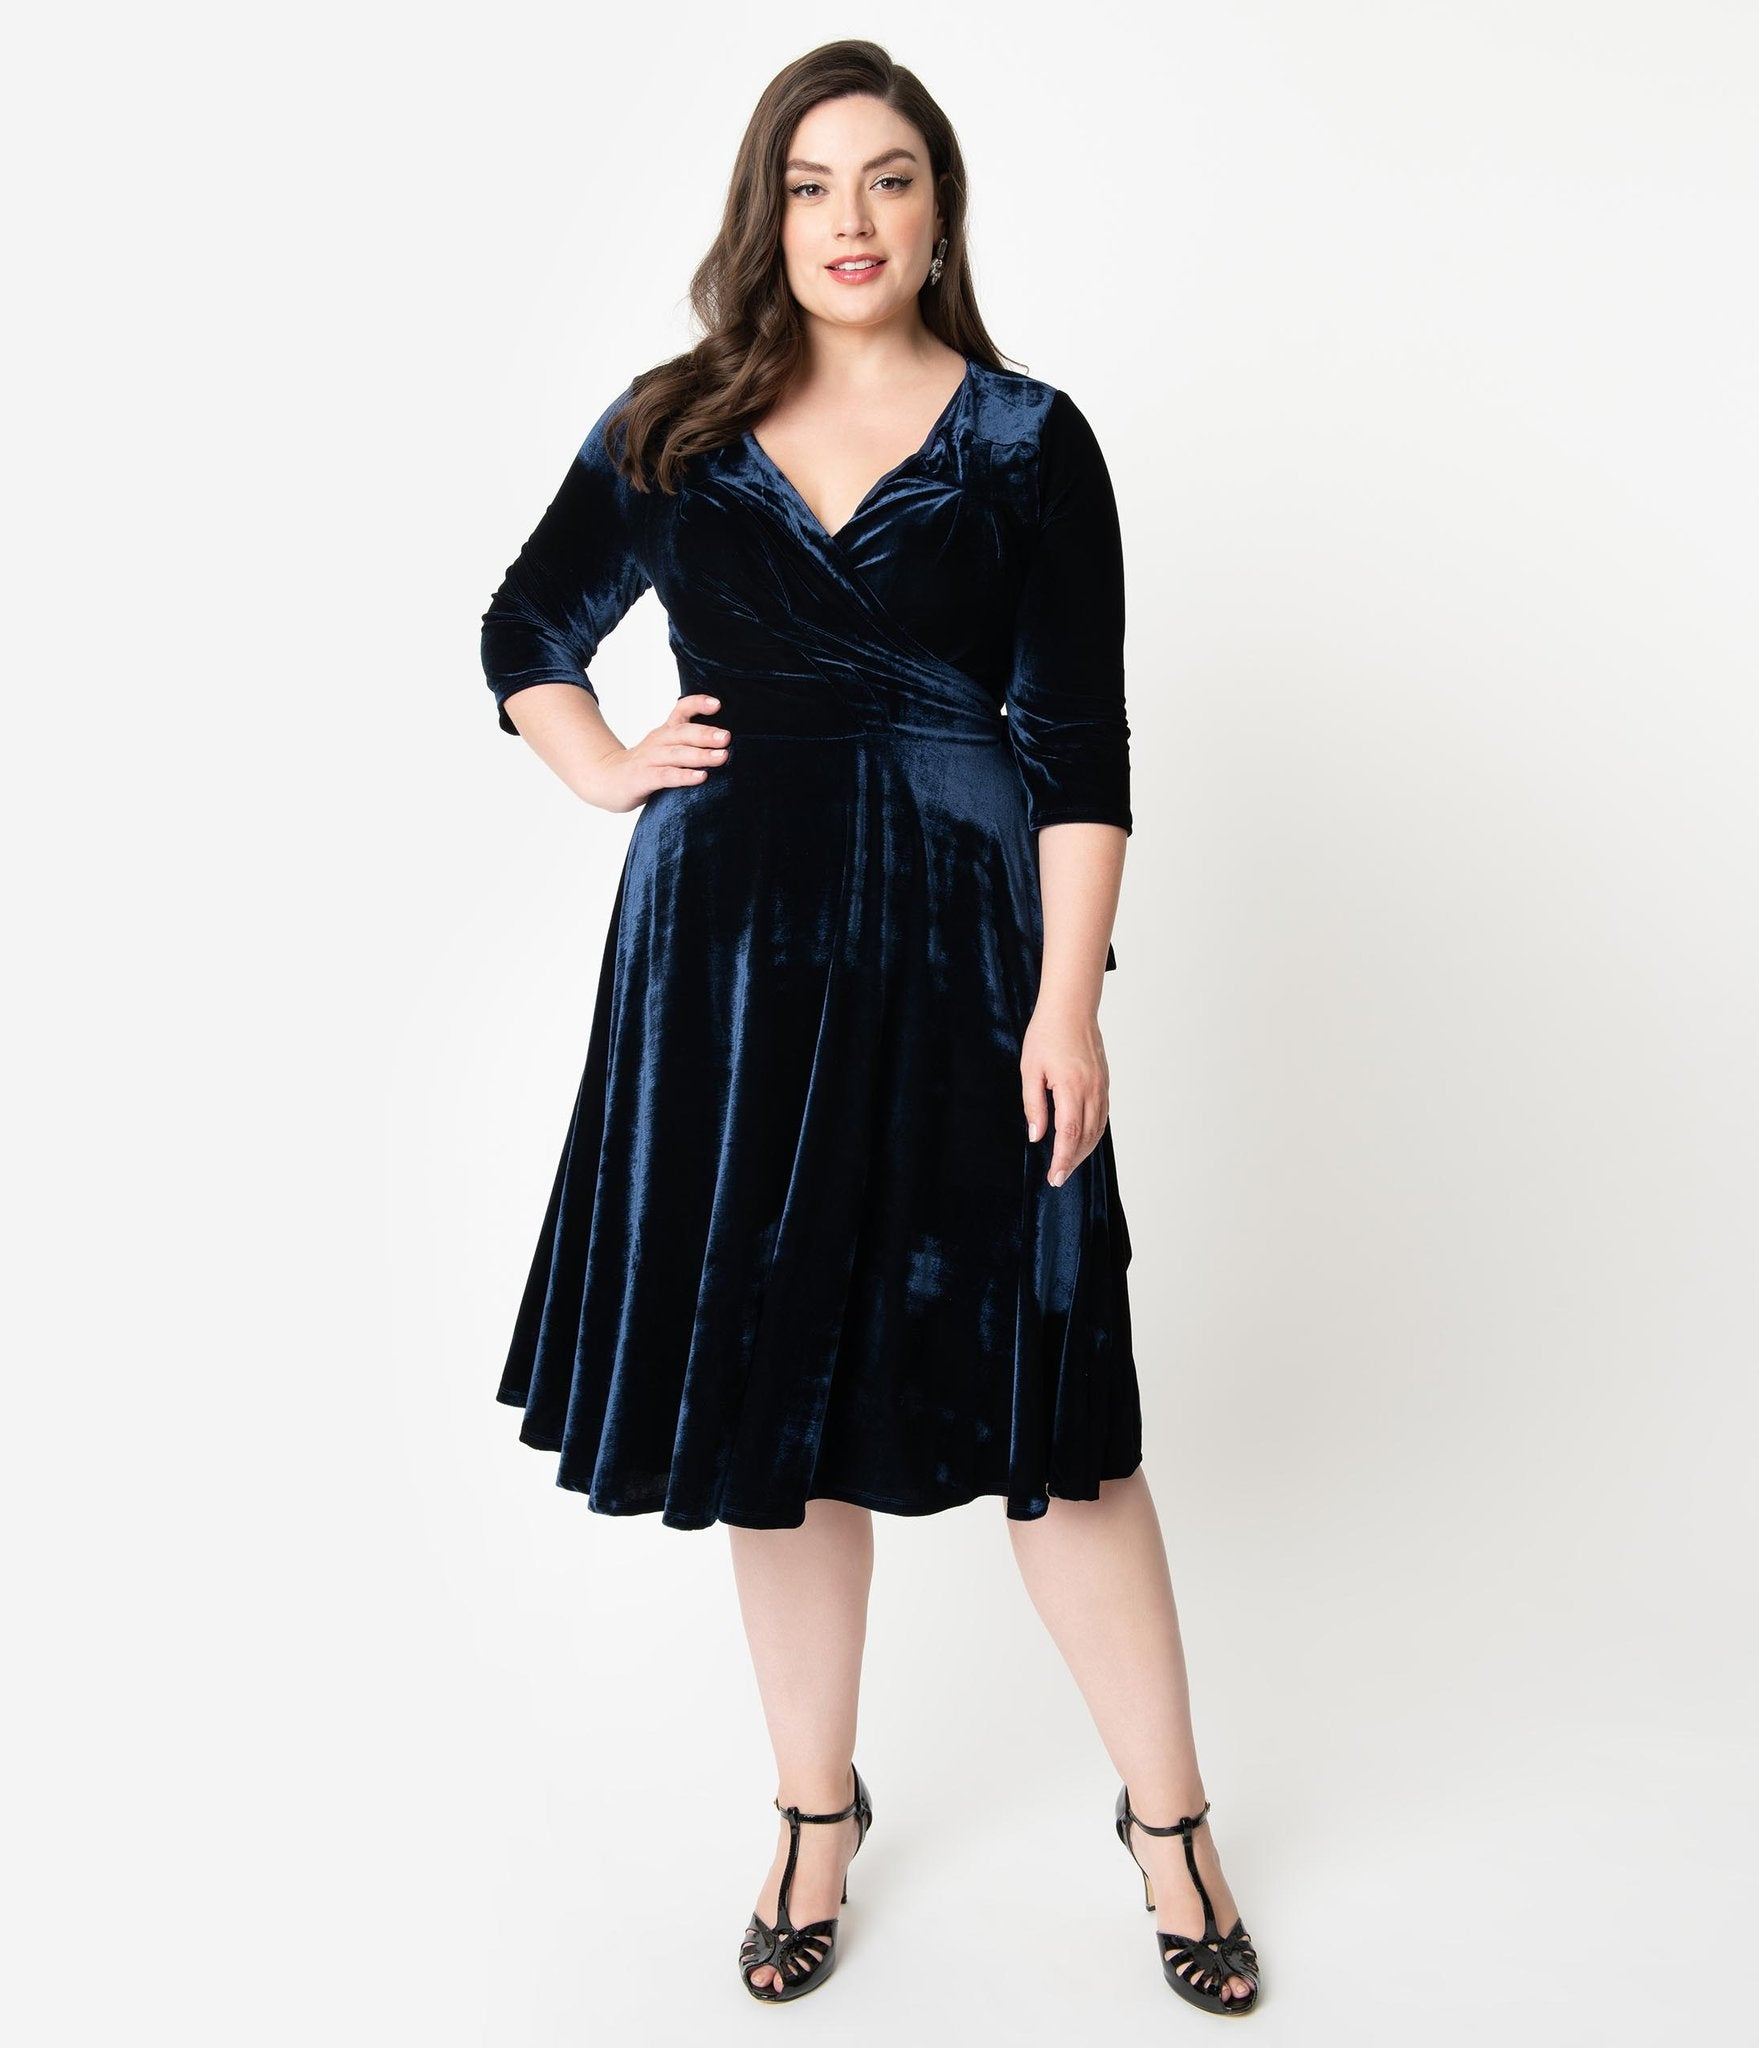 Navy Blue Velvet Wrap Dress